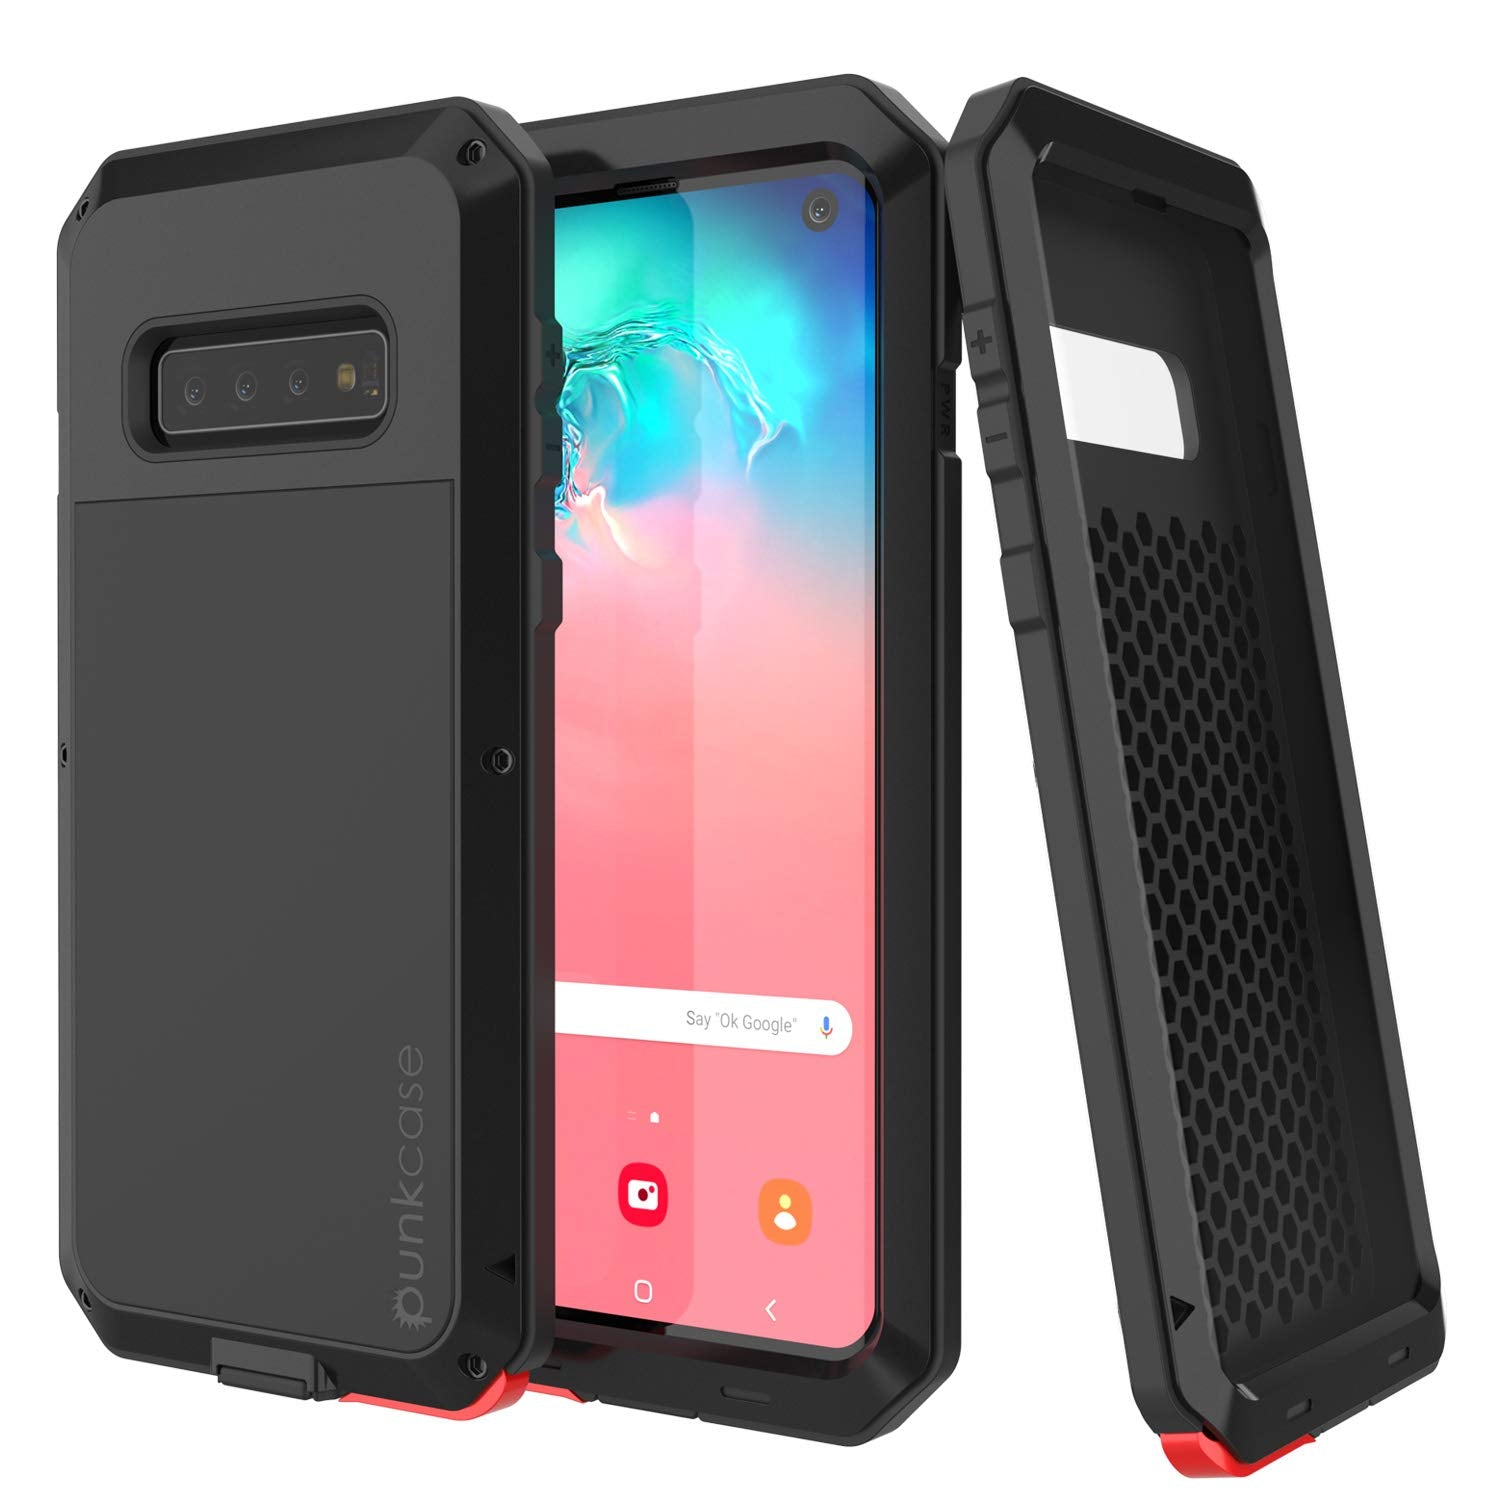 Galaxy S10 Metal Case, Heavy Duty Military Grade Rugged Armor Cover [Black]